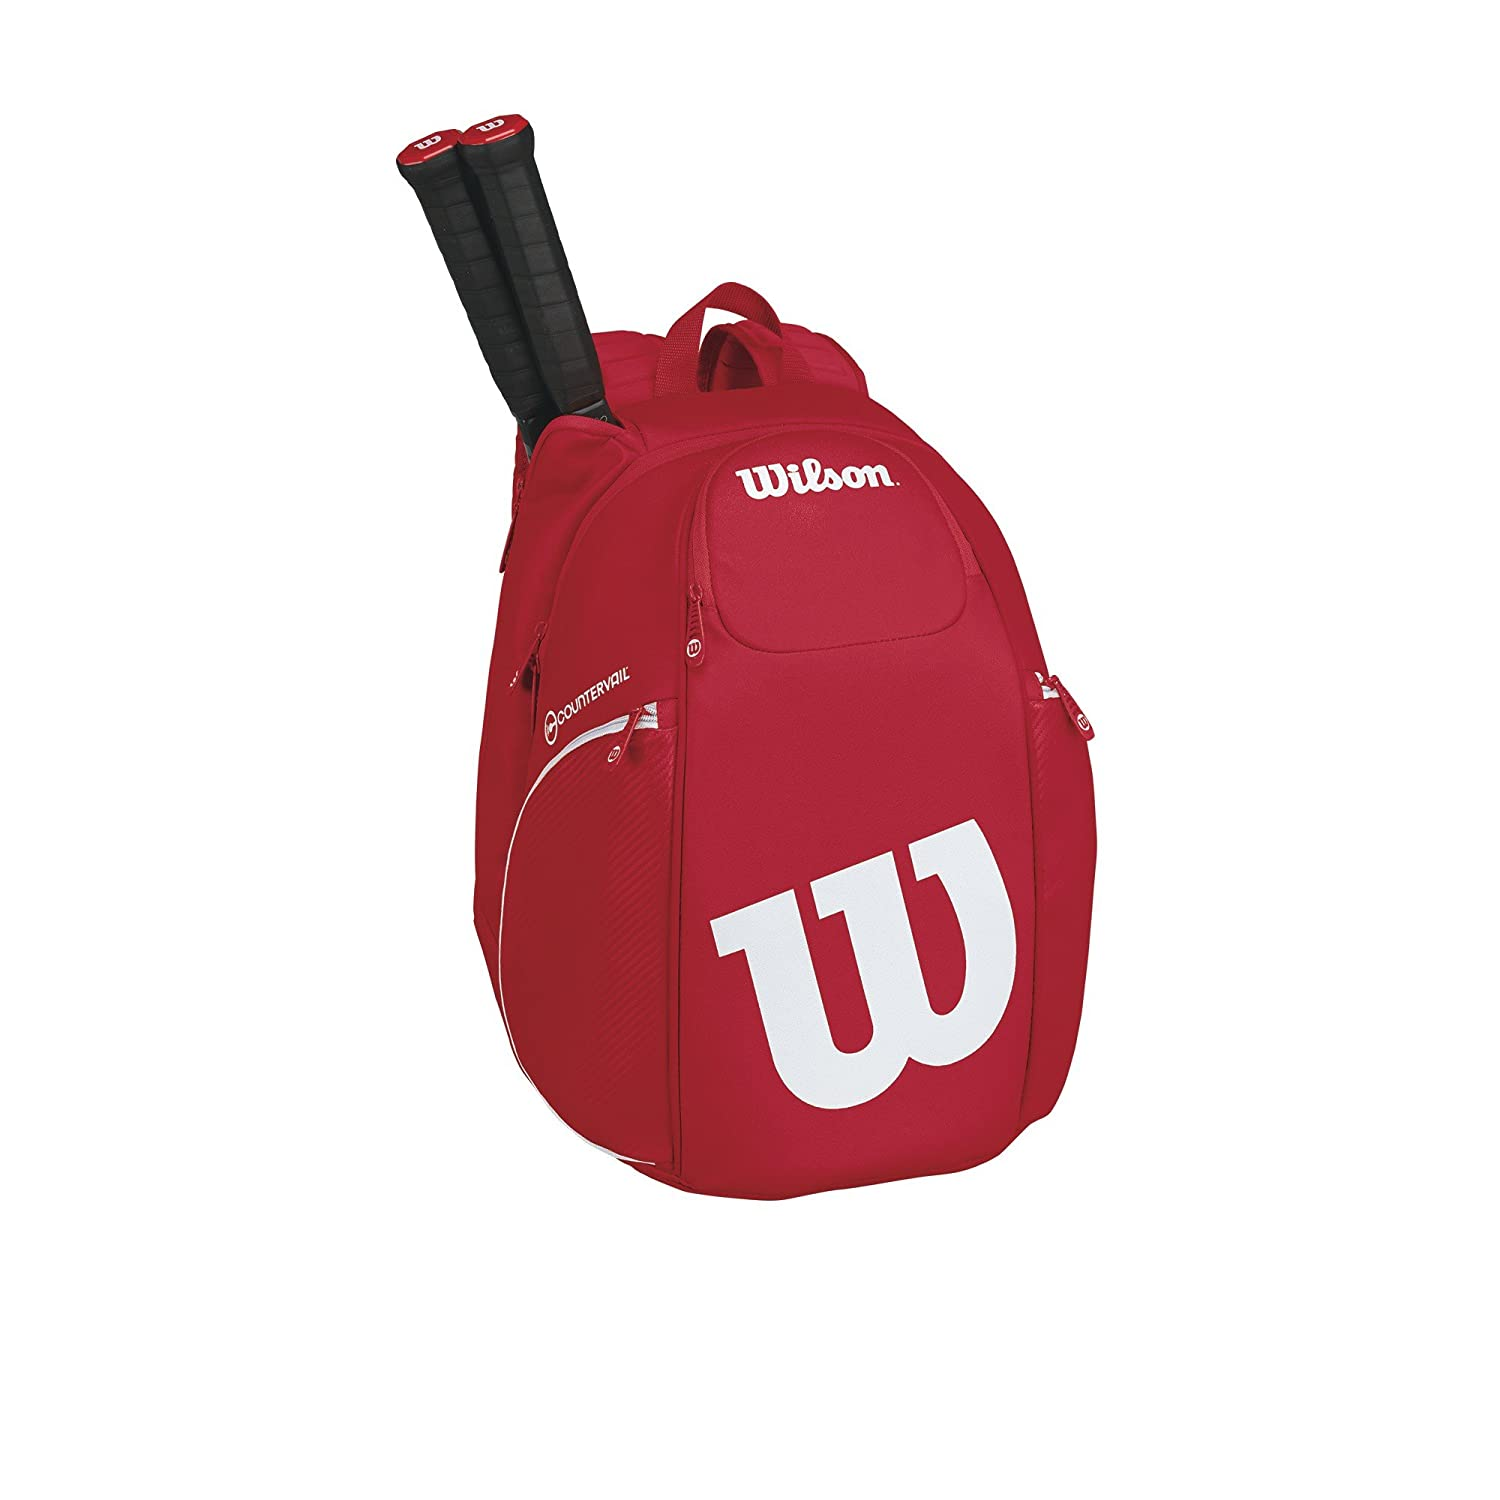 Backpack Red//White Wilson Vancouver Racket Bag Pro Staff Collection